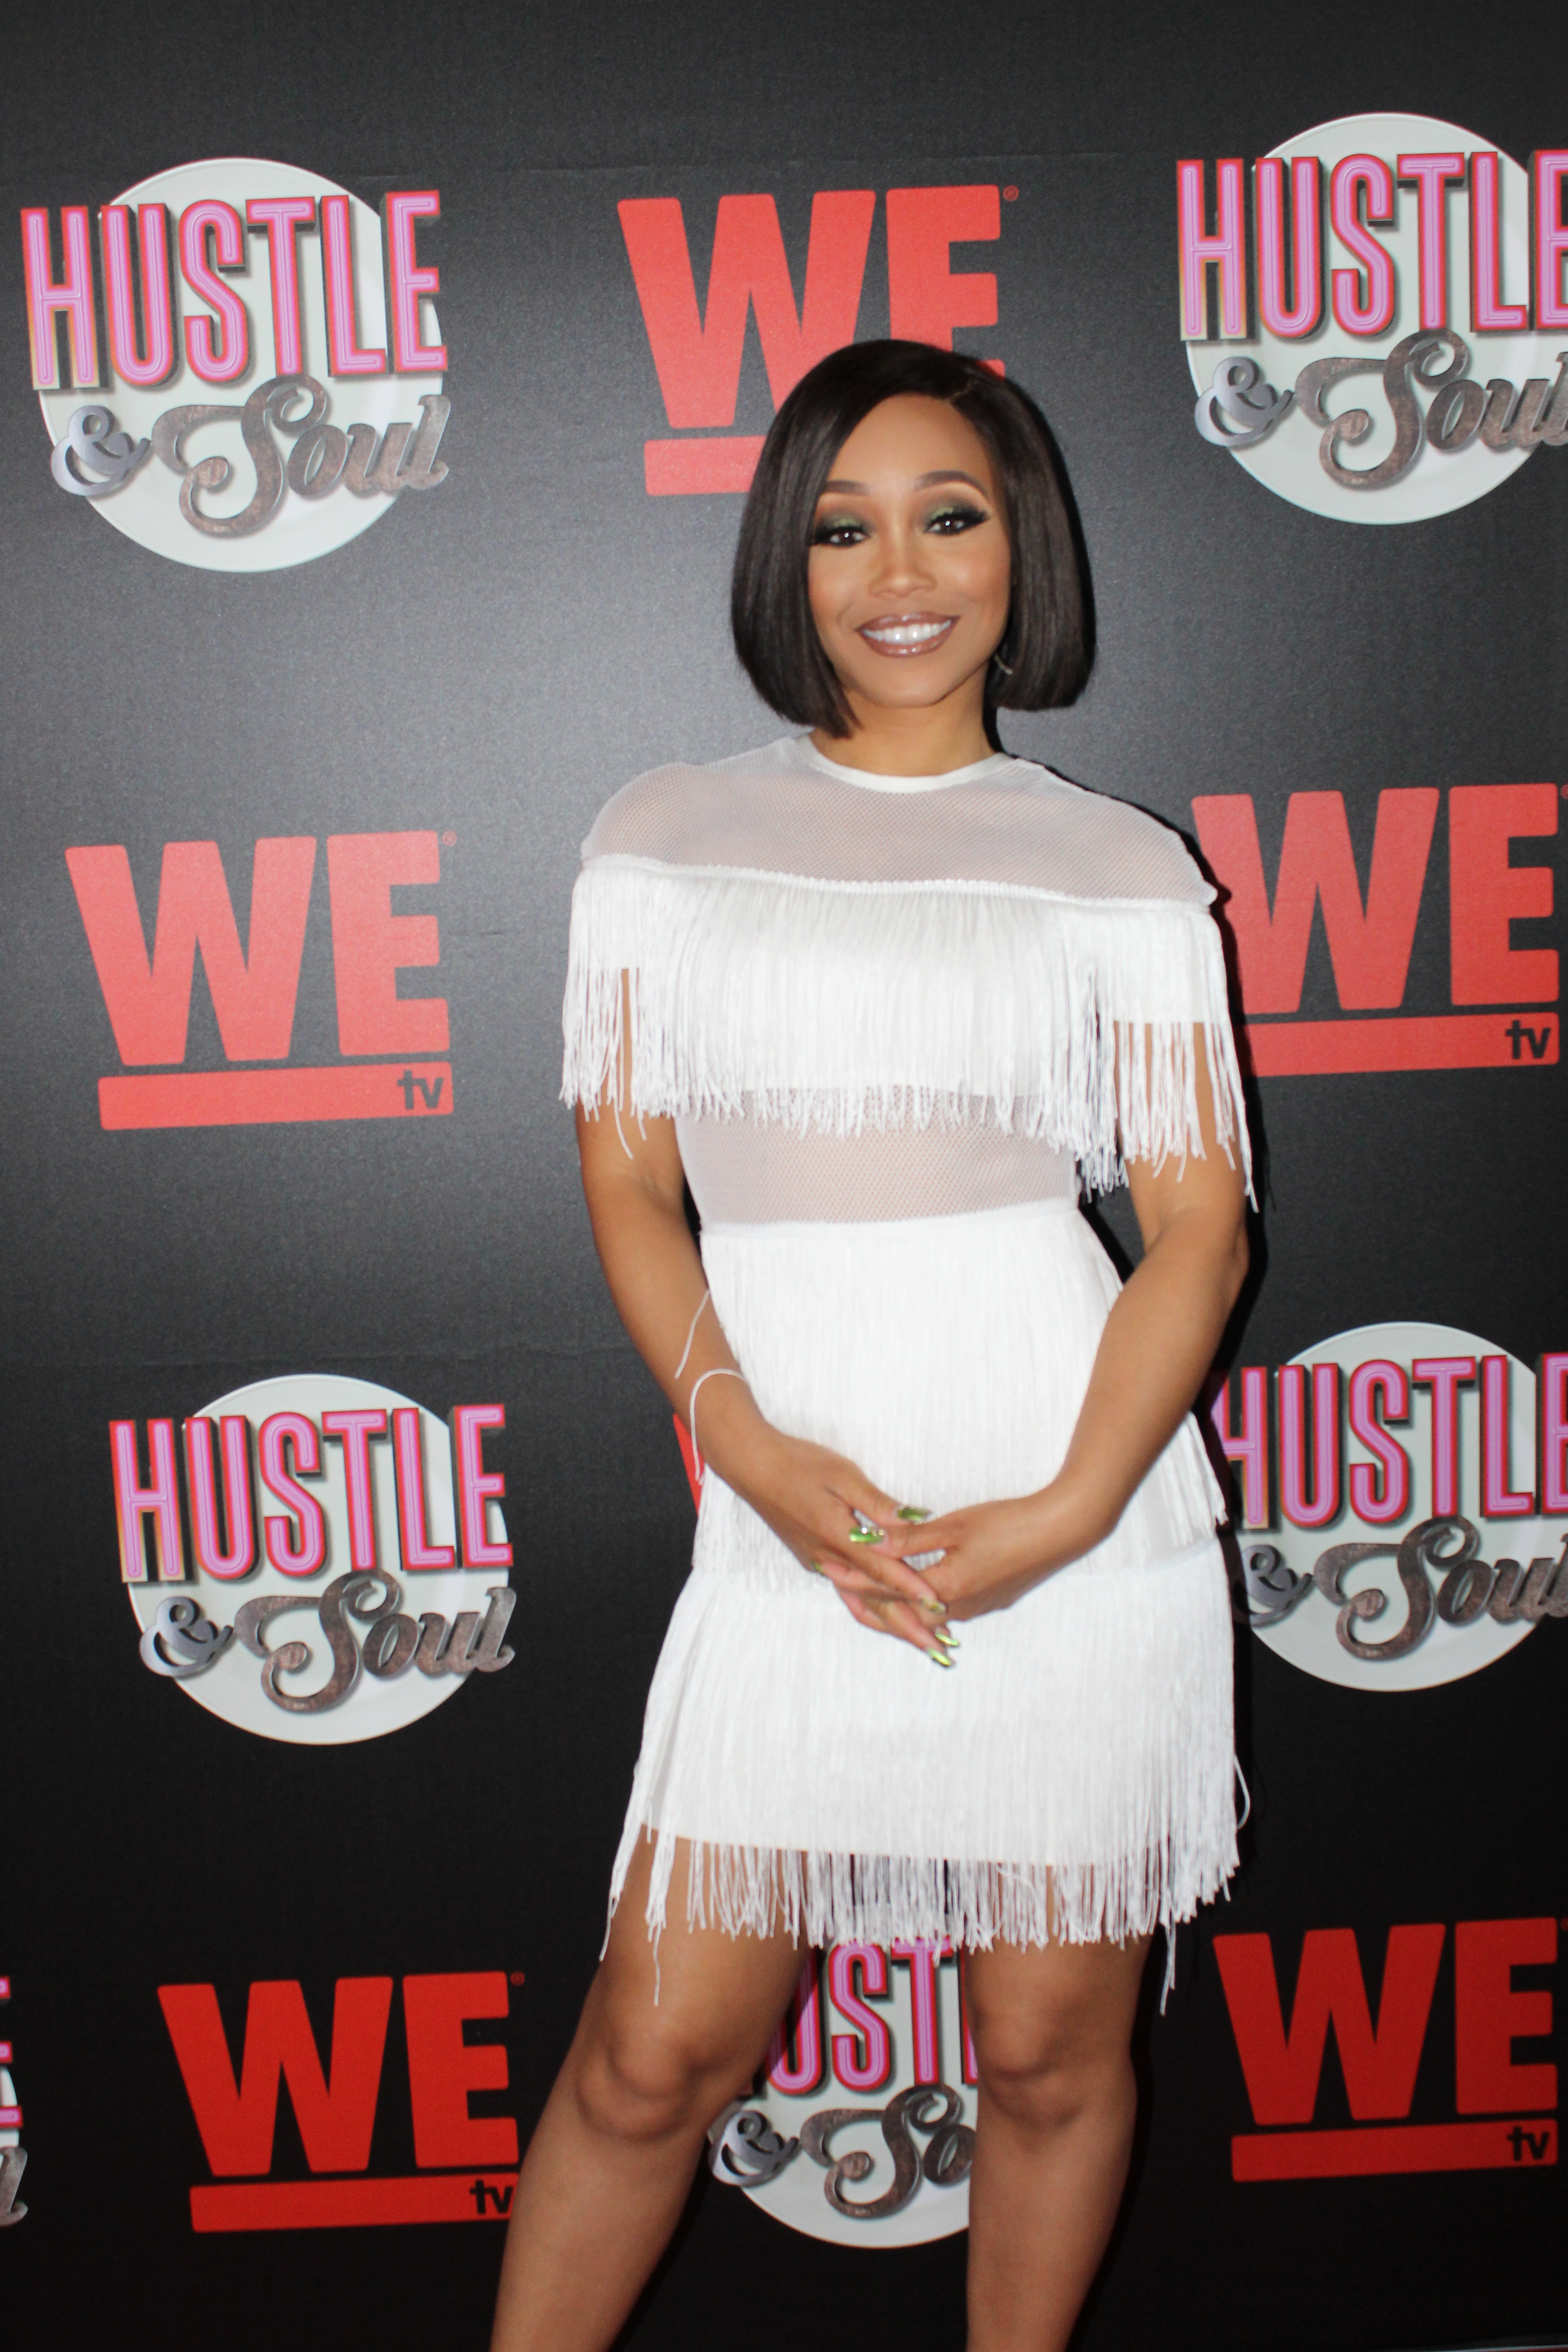 Wetv Hosts Premiere Event For Season 3 Of Hustle Soul In Miami